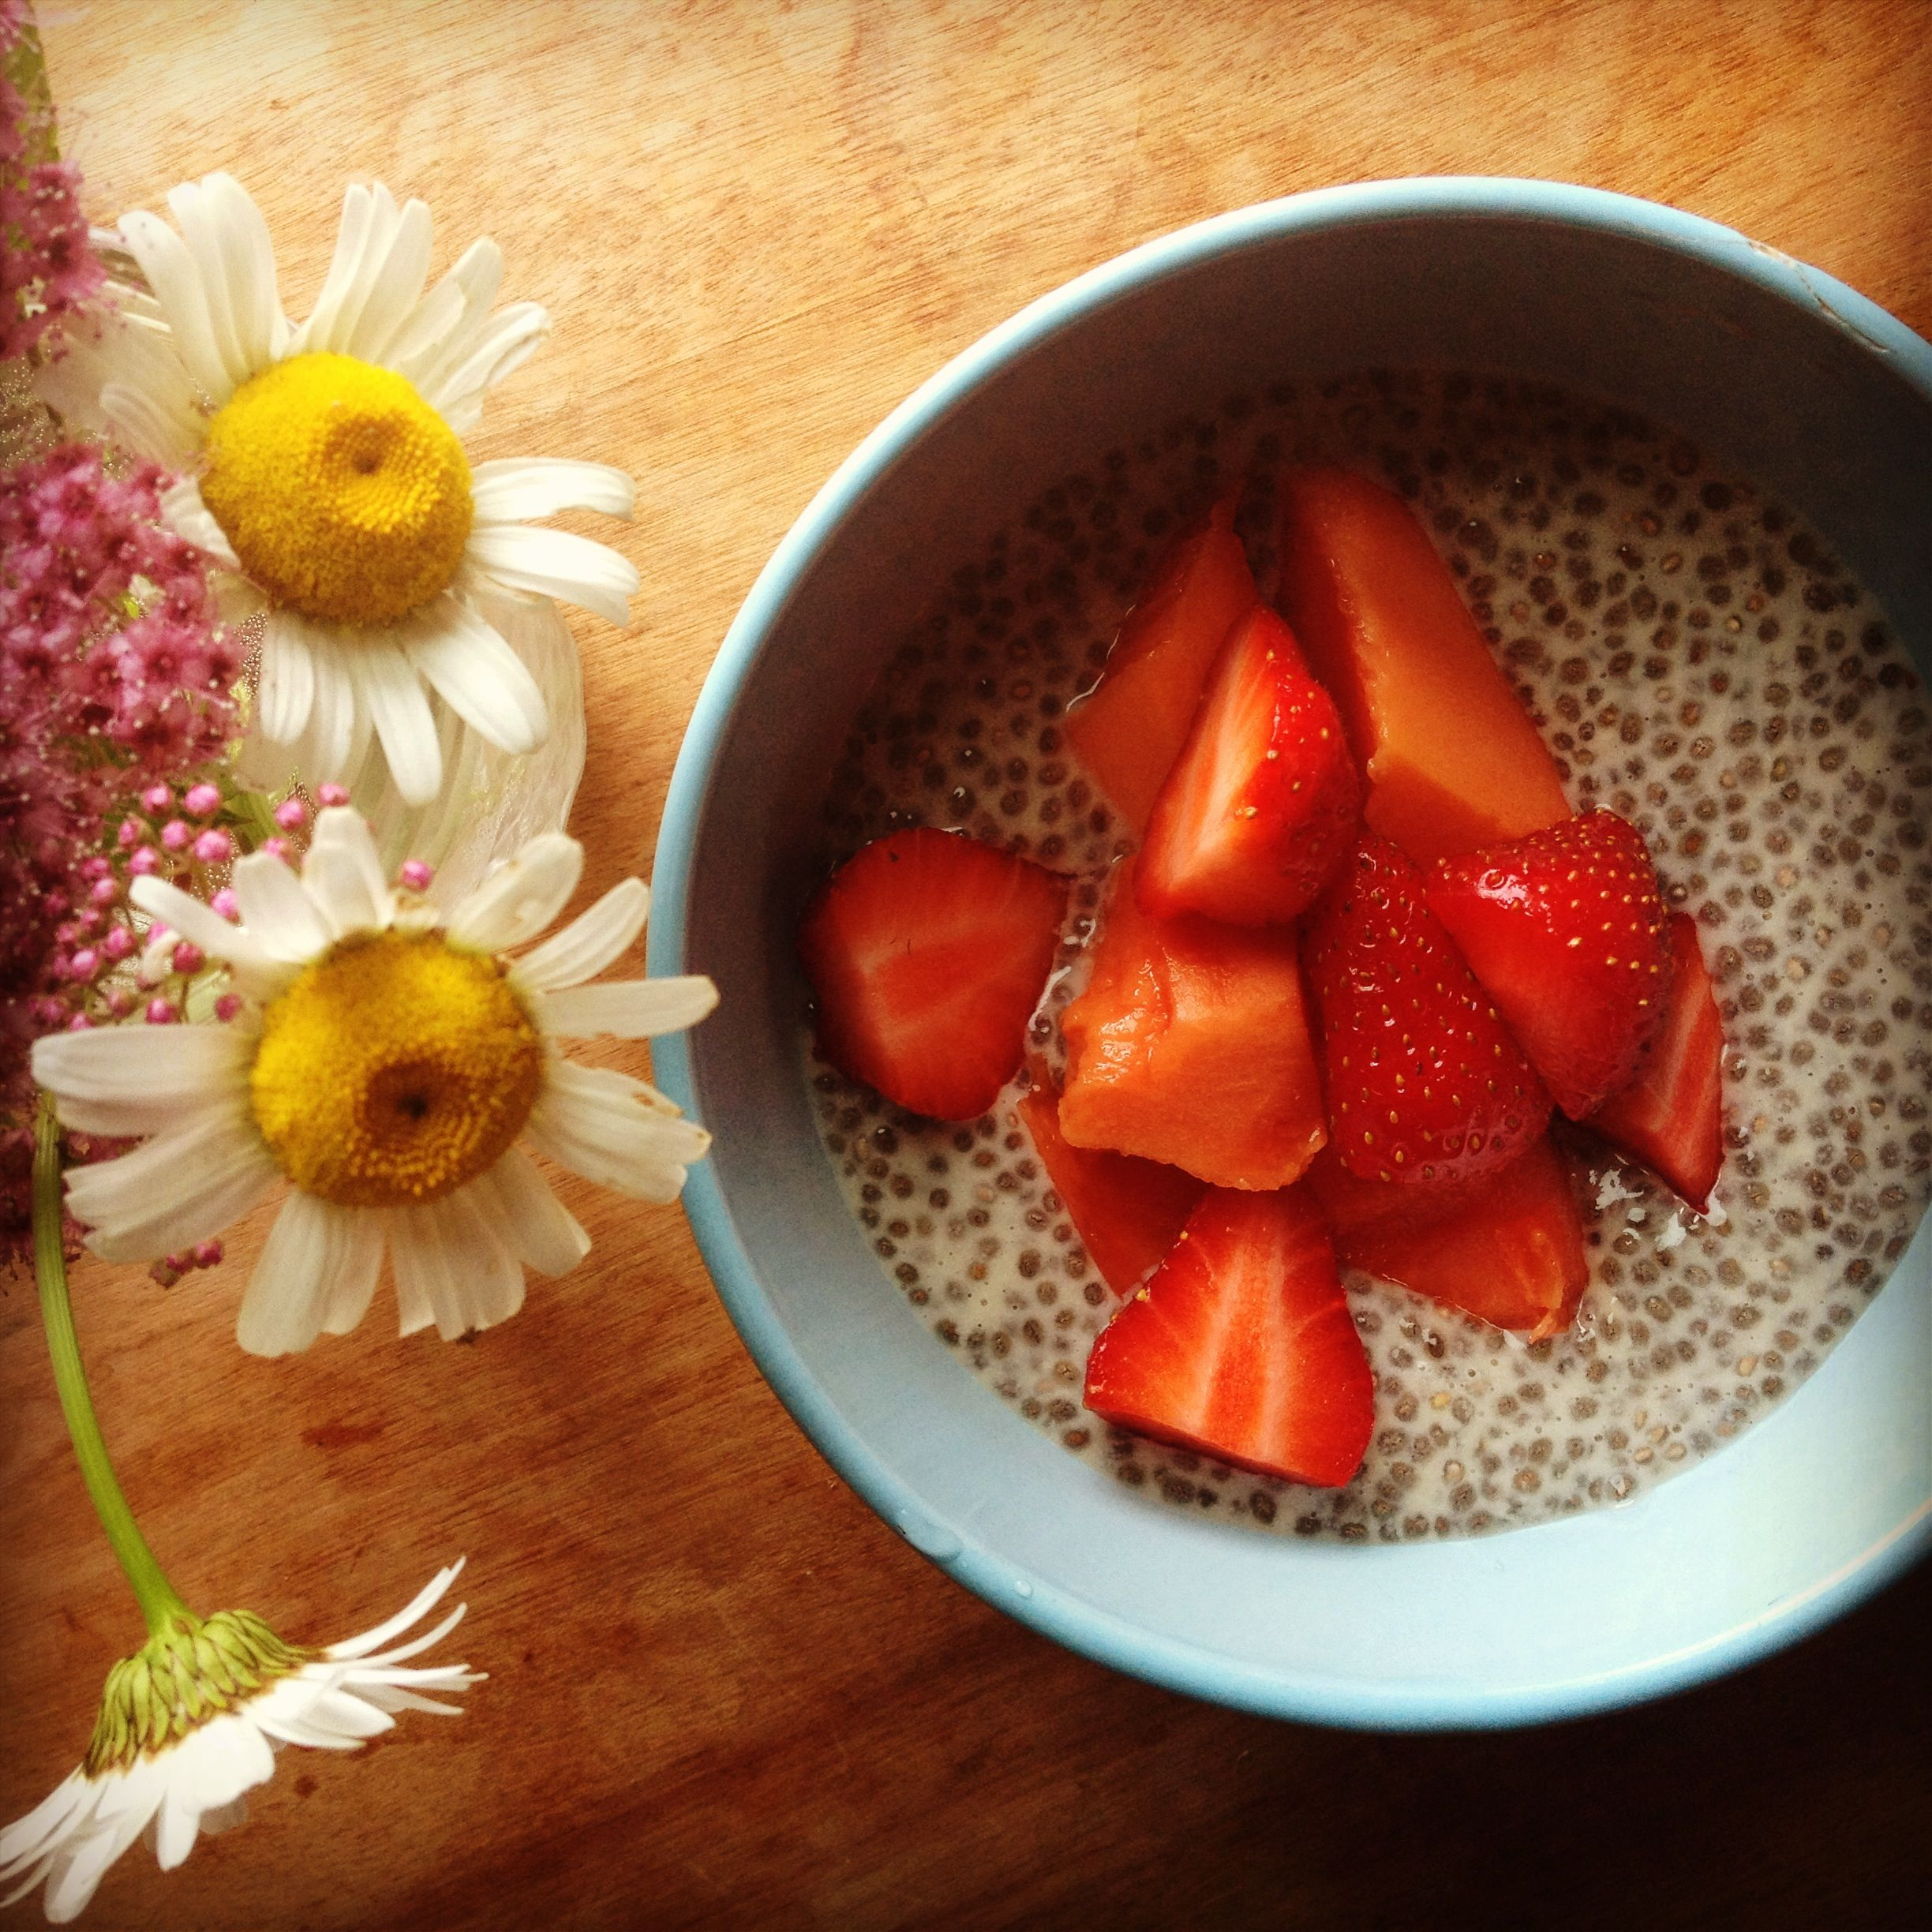 A bowl of chia pudding with fresh local Vermont strawberries.